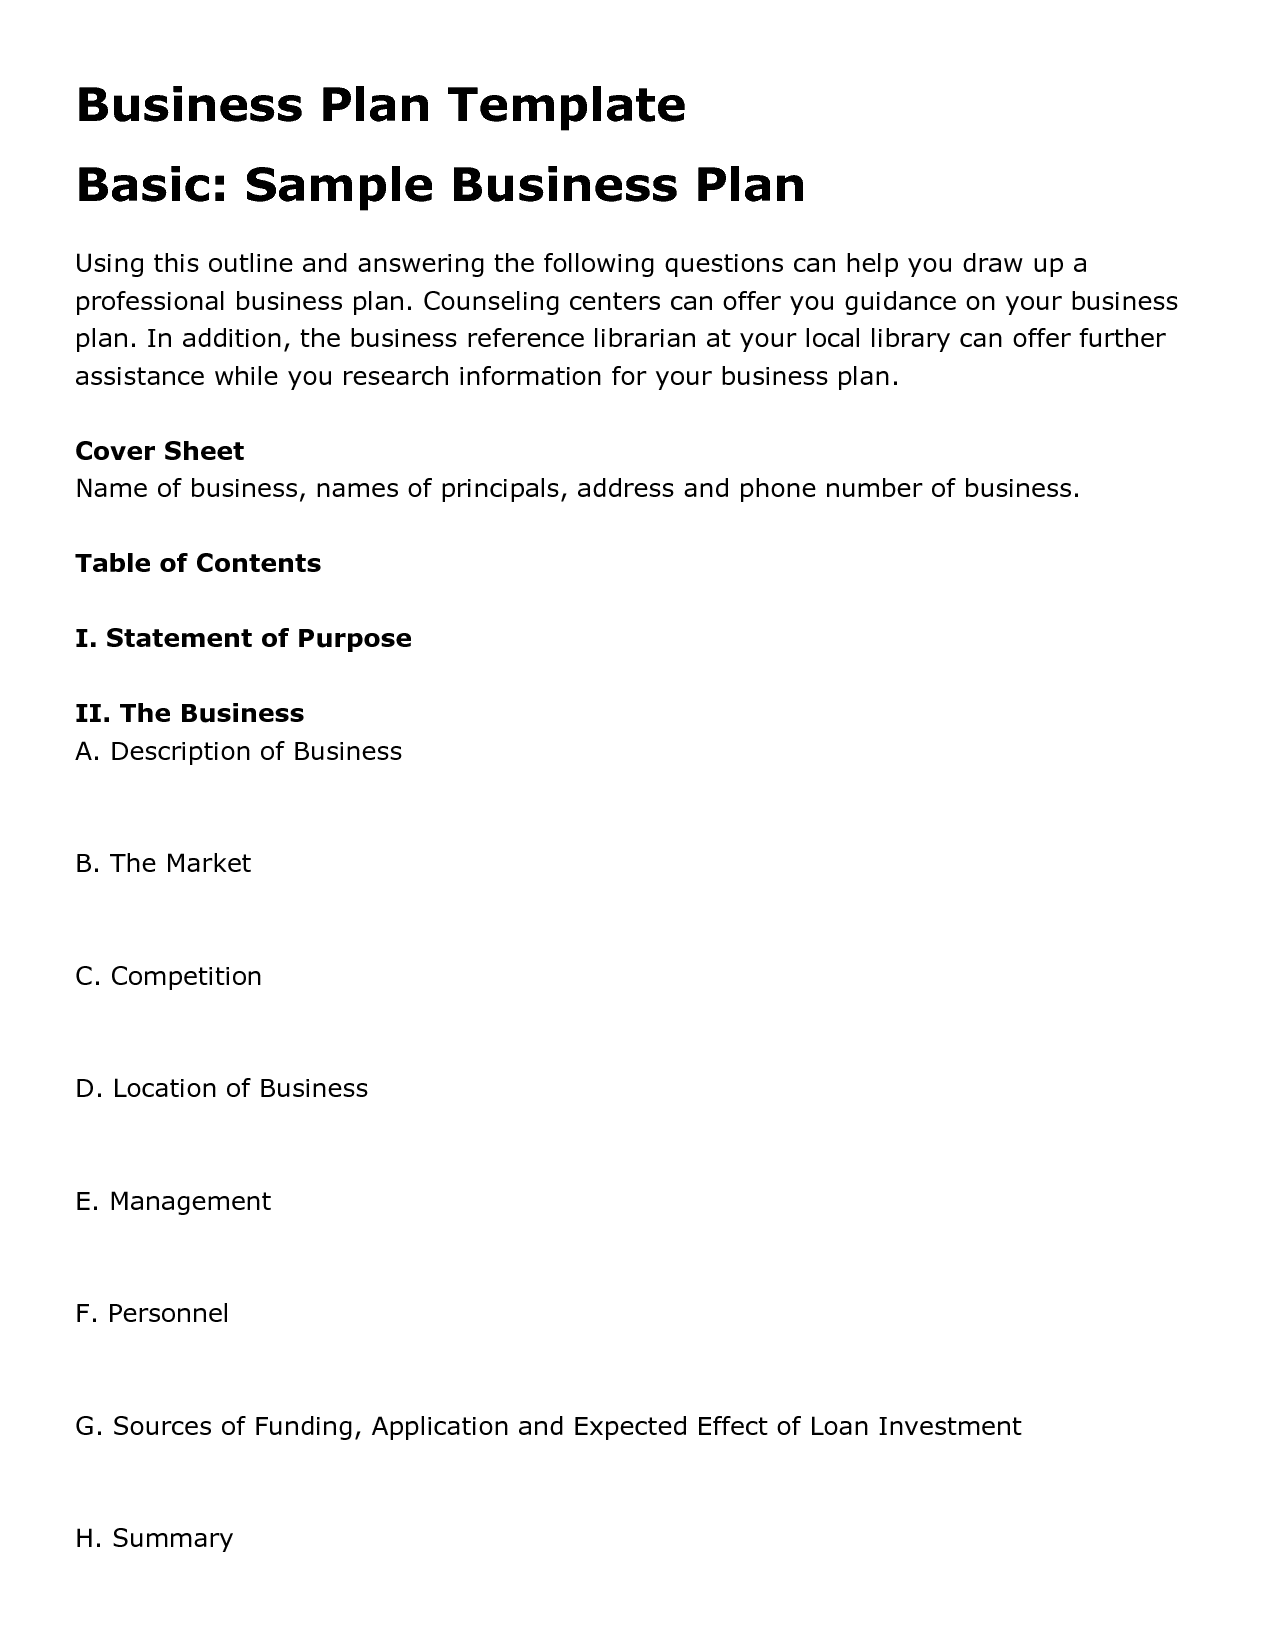 Simple Business Plan DESIGN ENTREPRENEUR Pinterest Simple - Basic business plan outline template